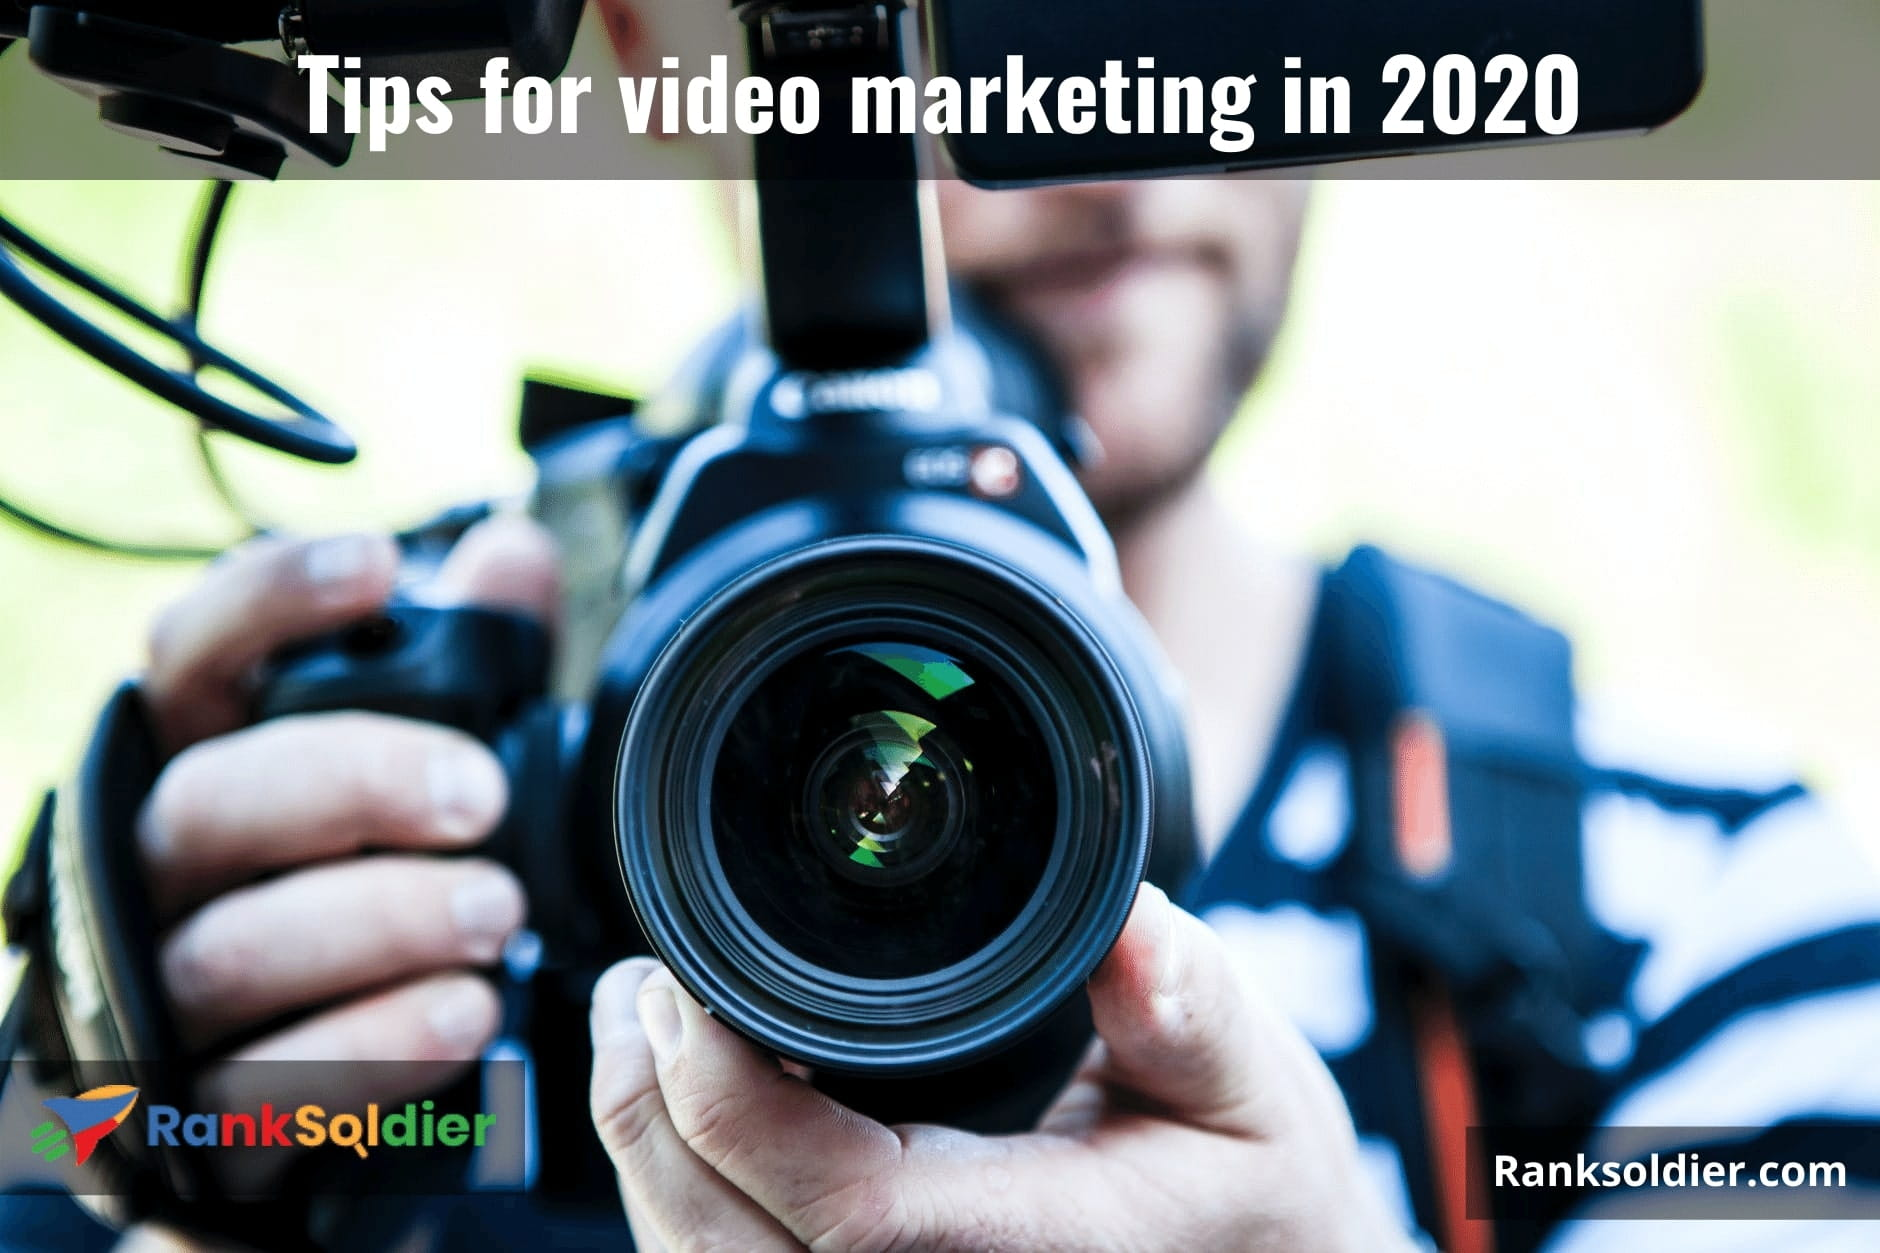 Tips for video marketing in 2020